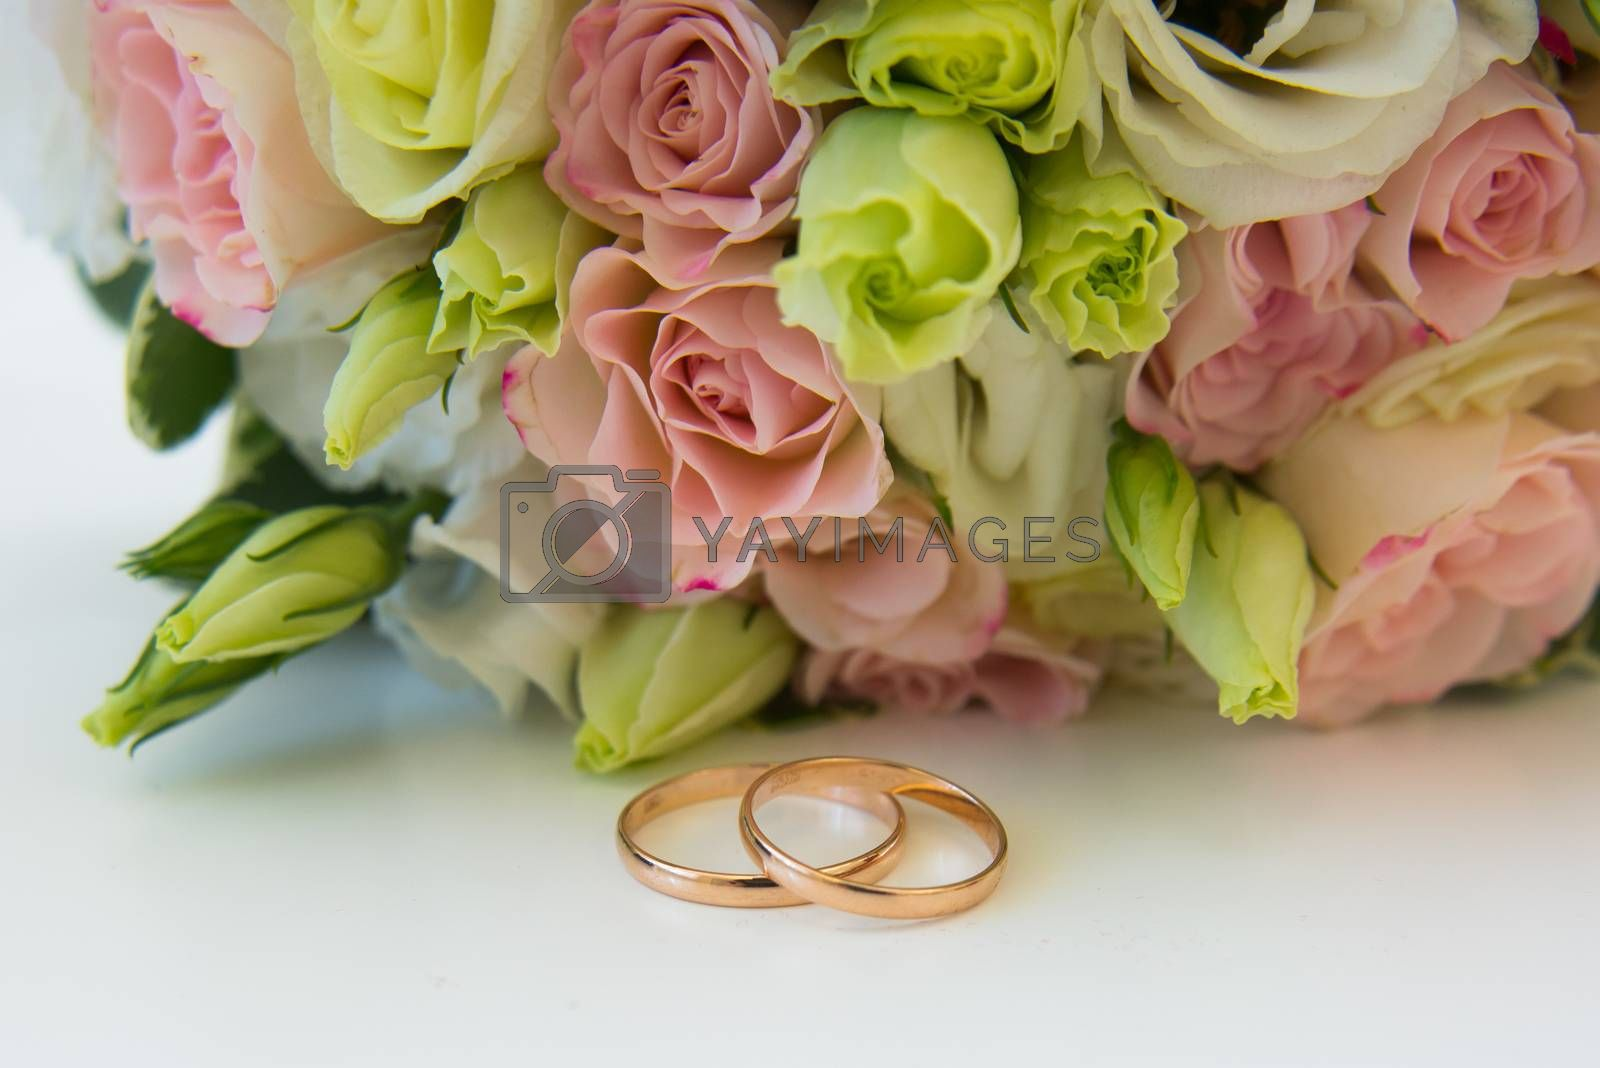 Gold wedding rings and flowers. Brides bouquet of pink roses